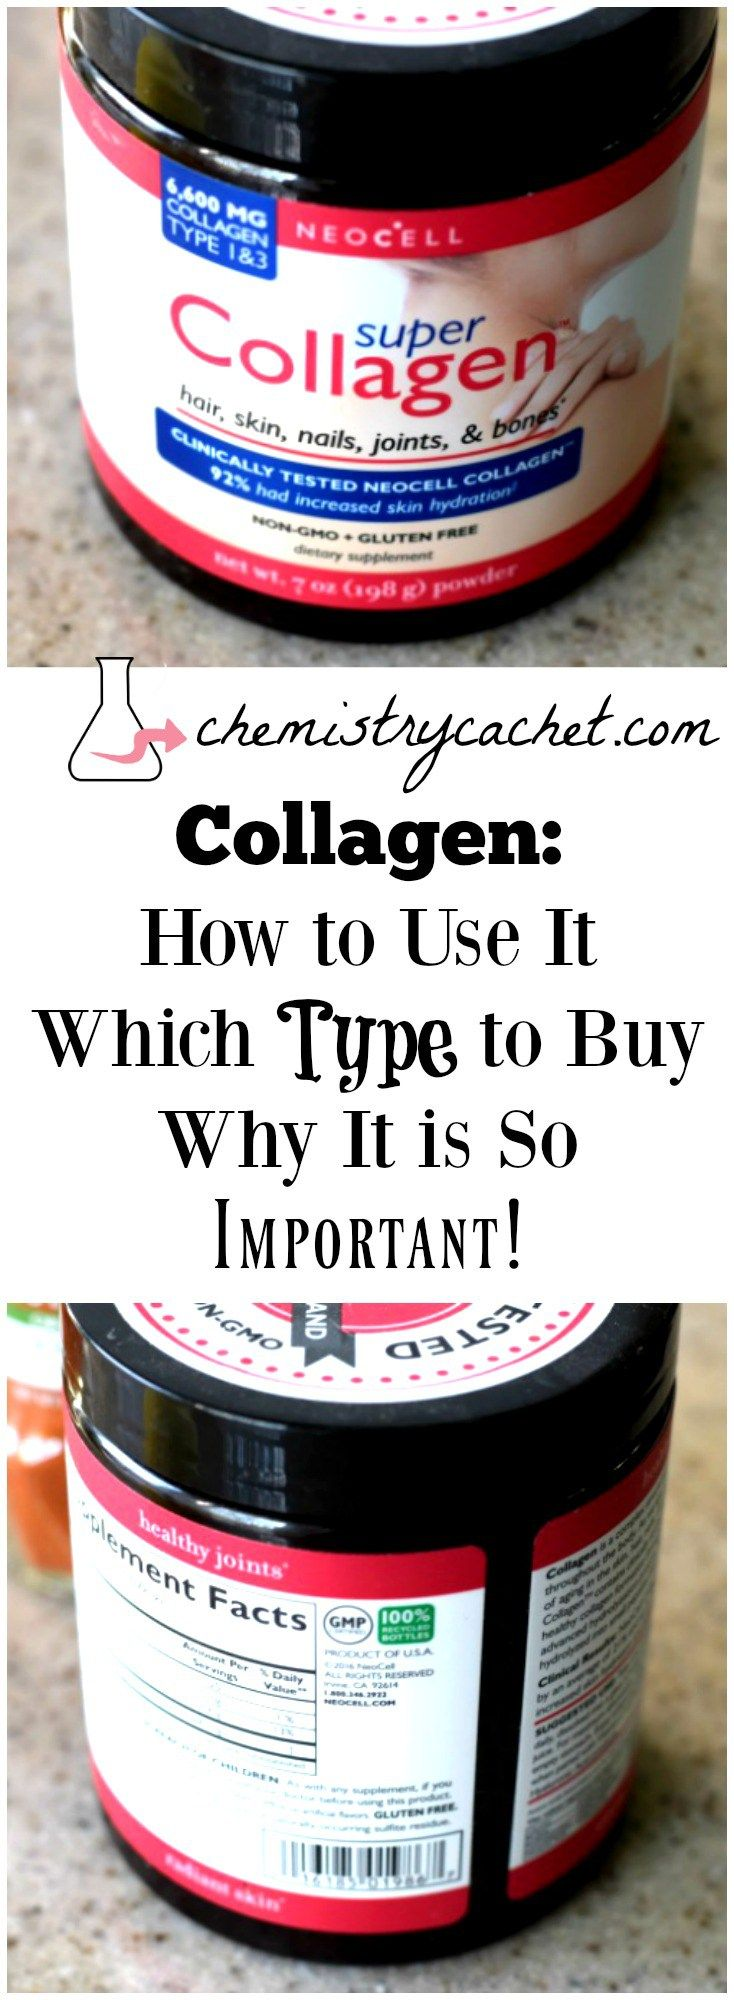 The function of collagen and why you should take collagen as a supplement. Plus how to use it and the best type of collagen to buy on chemistrycachet.com